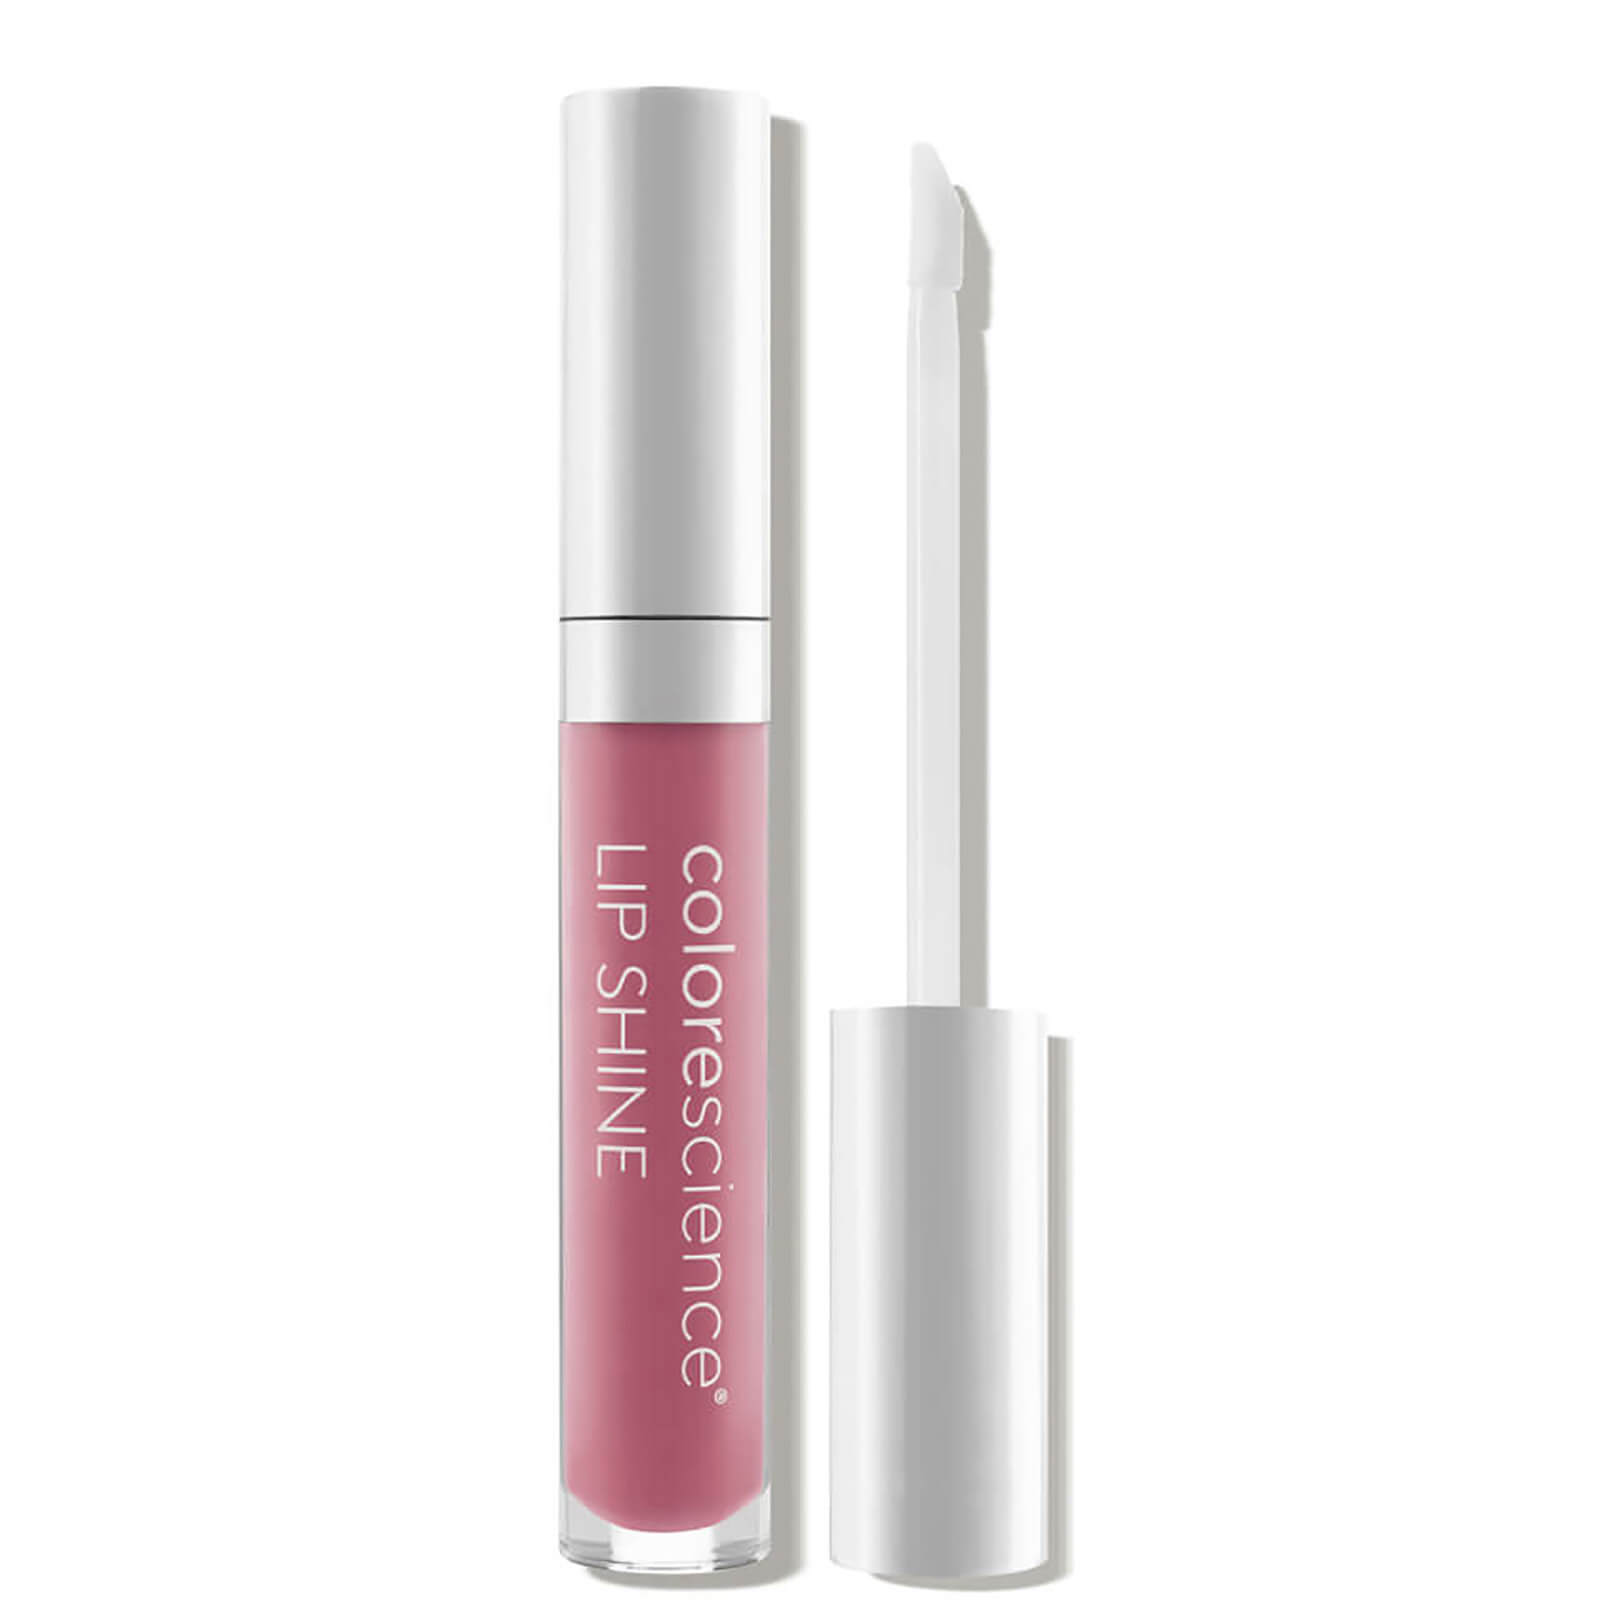 Watch a story about COLORESCIENCE SUNFORGETTABLE LIP SHINE SPF35 0.12OZ (VARIOUS SHADES) - ROSE